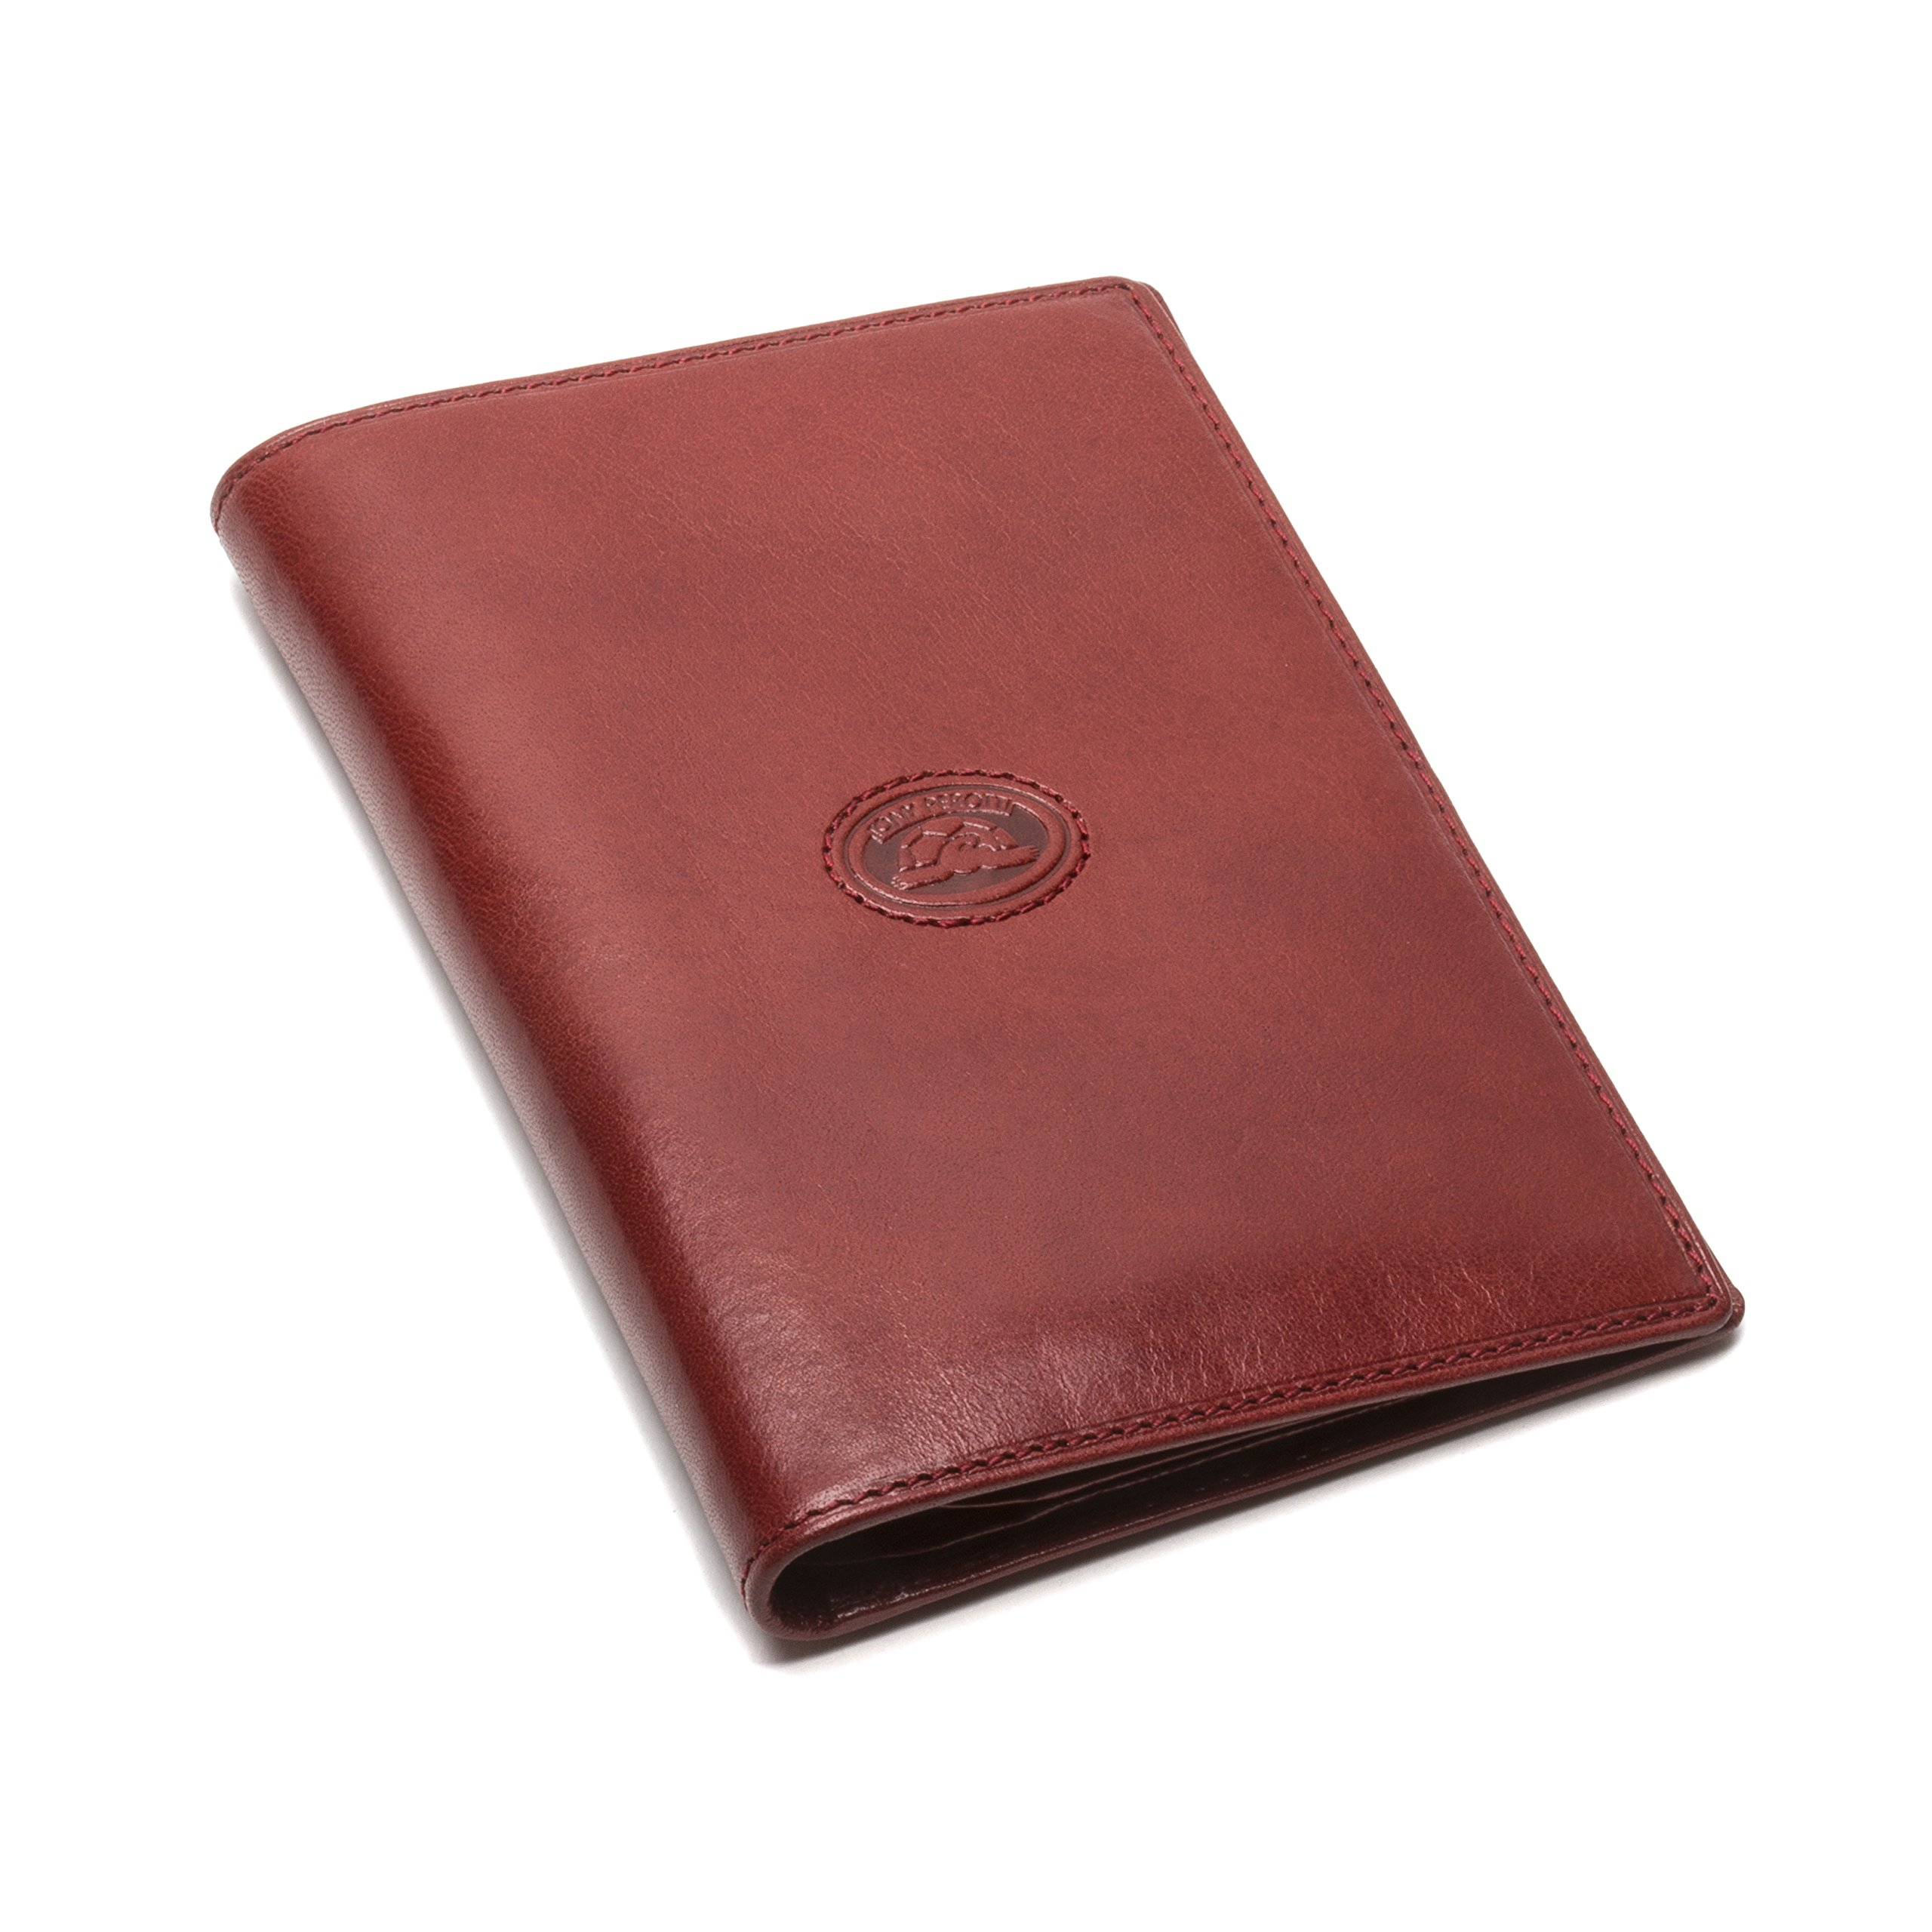 Tony Perotti Italian Bull Leather Executive Bifold Passport Cover Case